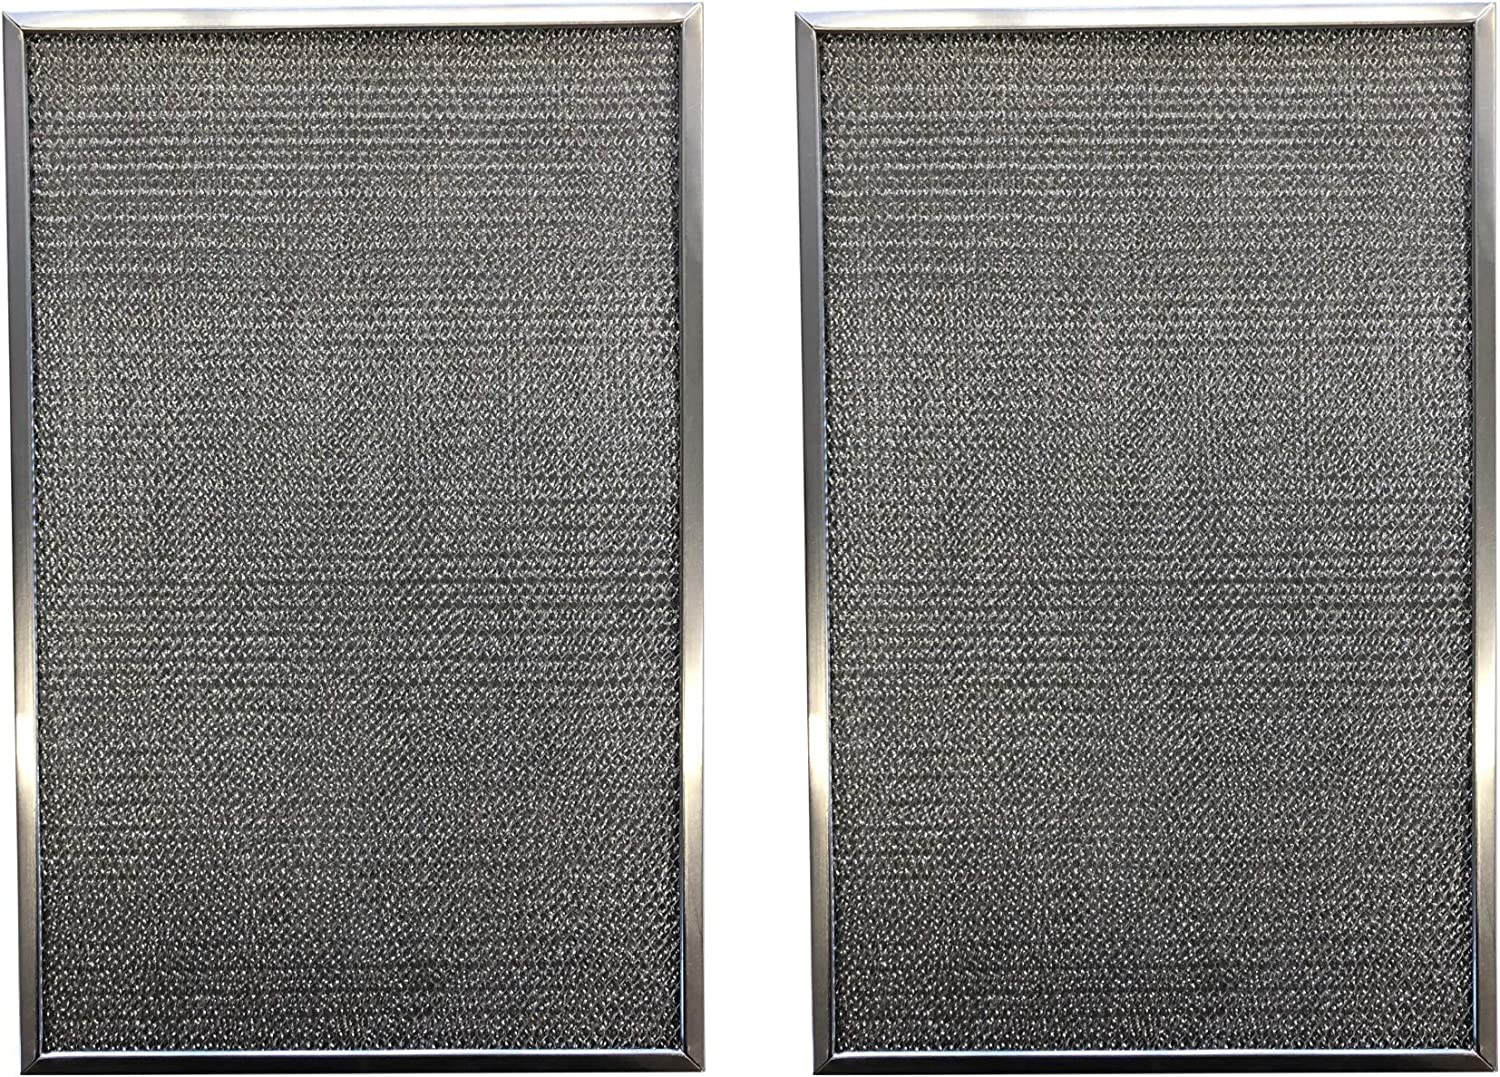 Replacement Aluminum Pre/Post Filter- 12-3/8 x 15-7/8 x 3/8 - Compatible with Honeywell Air Cleaner Models F300E1019, F300A1620, F50F1073 - (2-Pack)